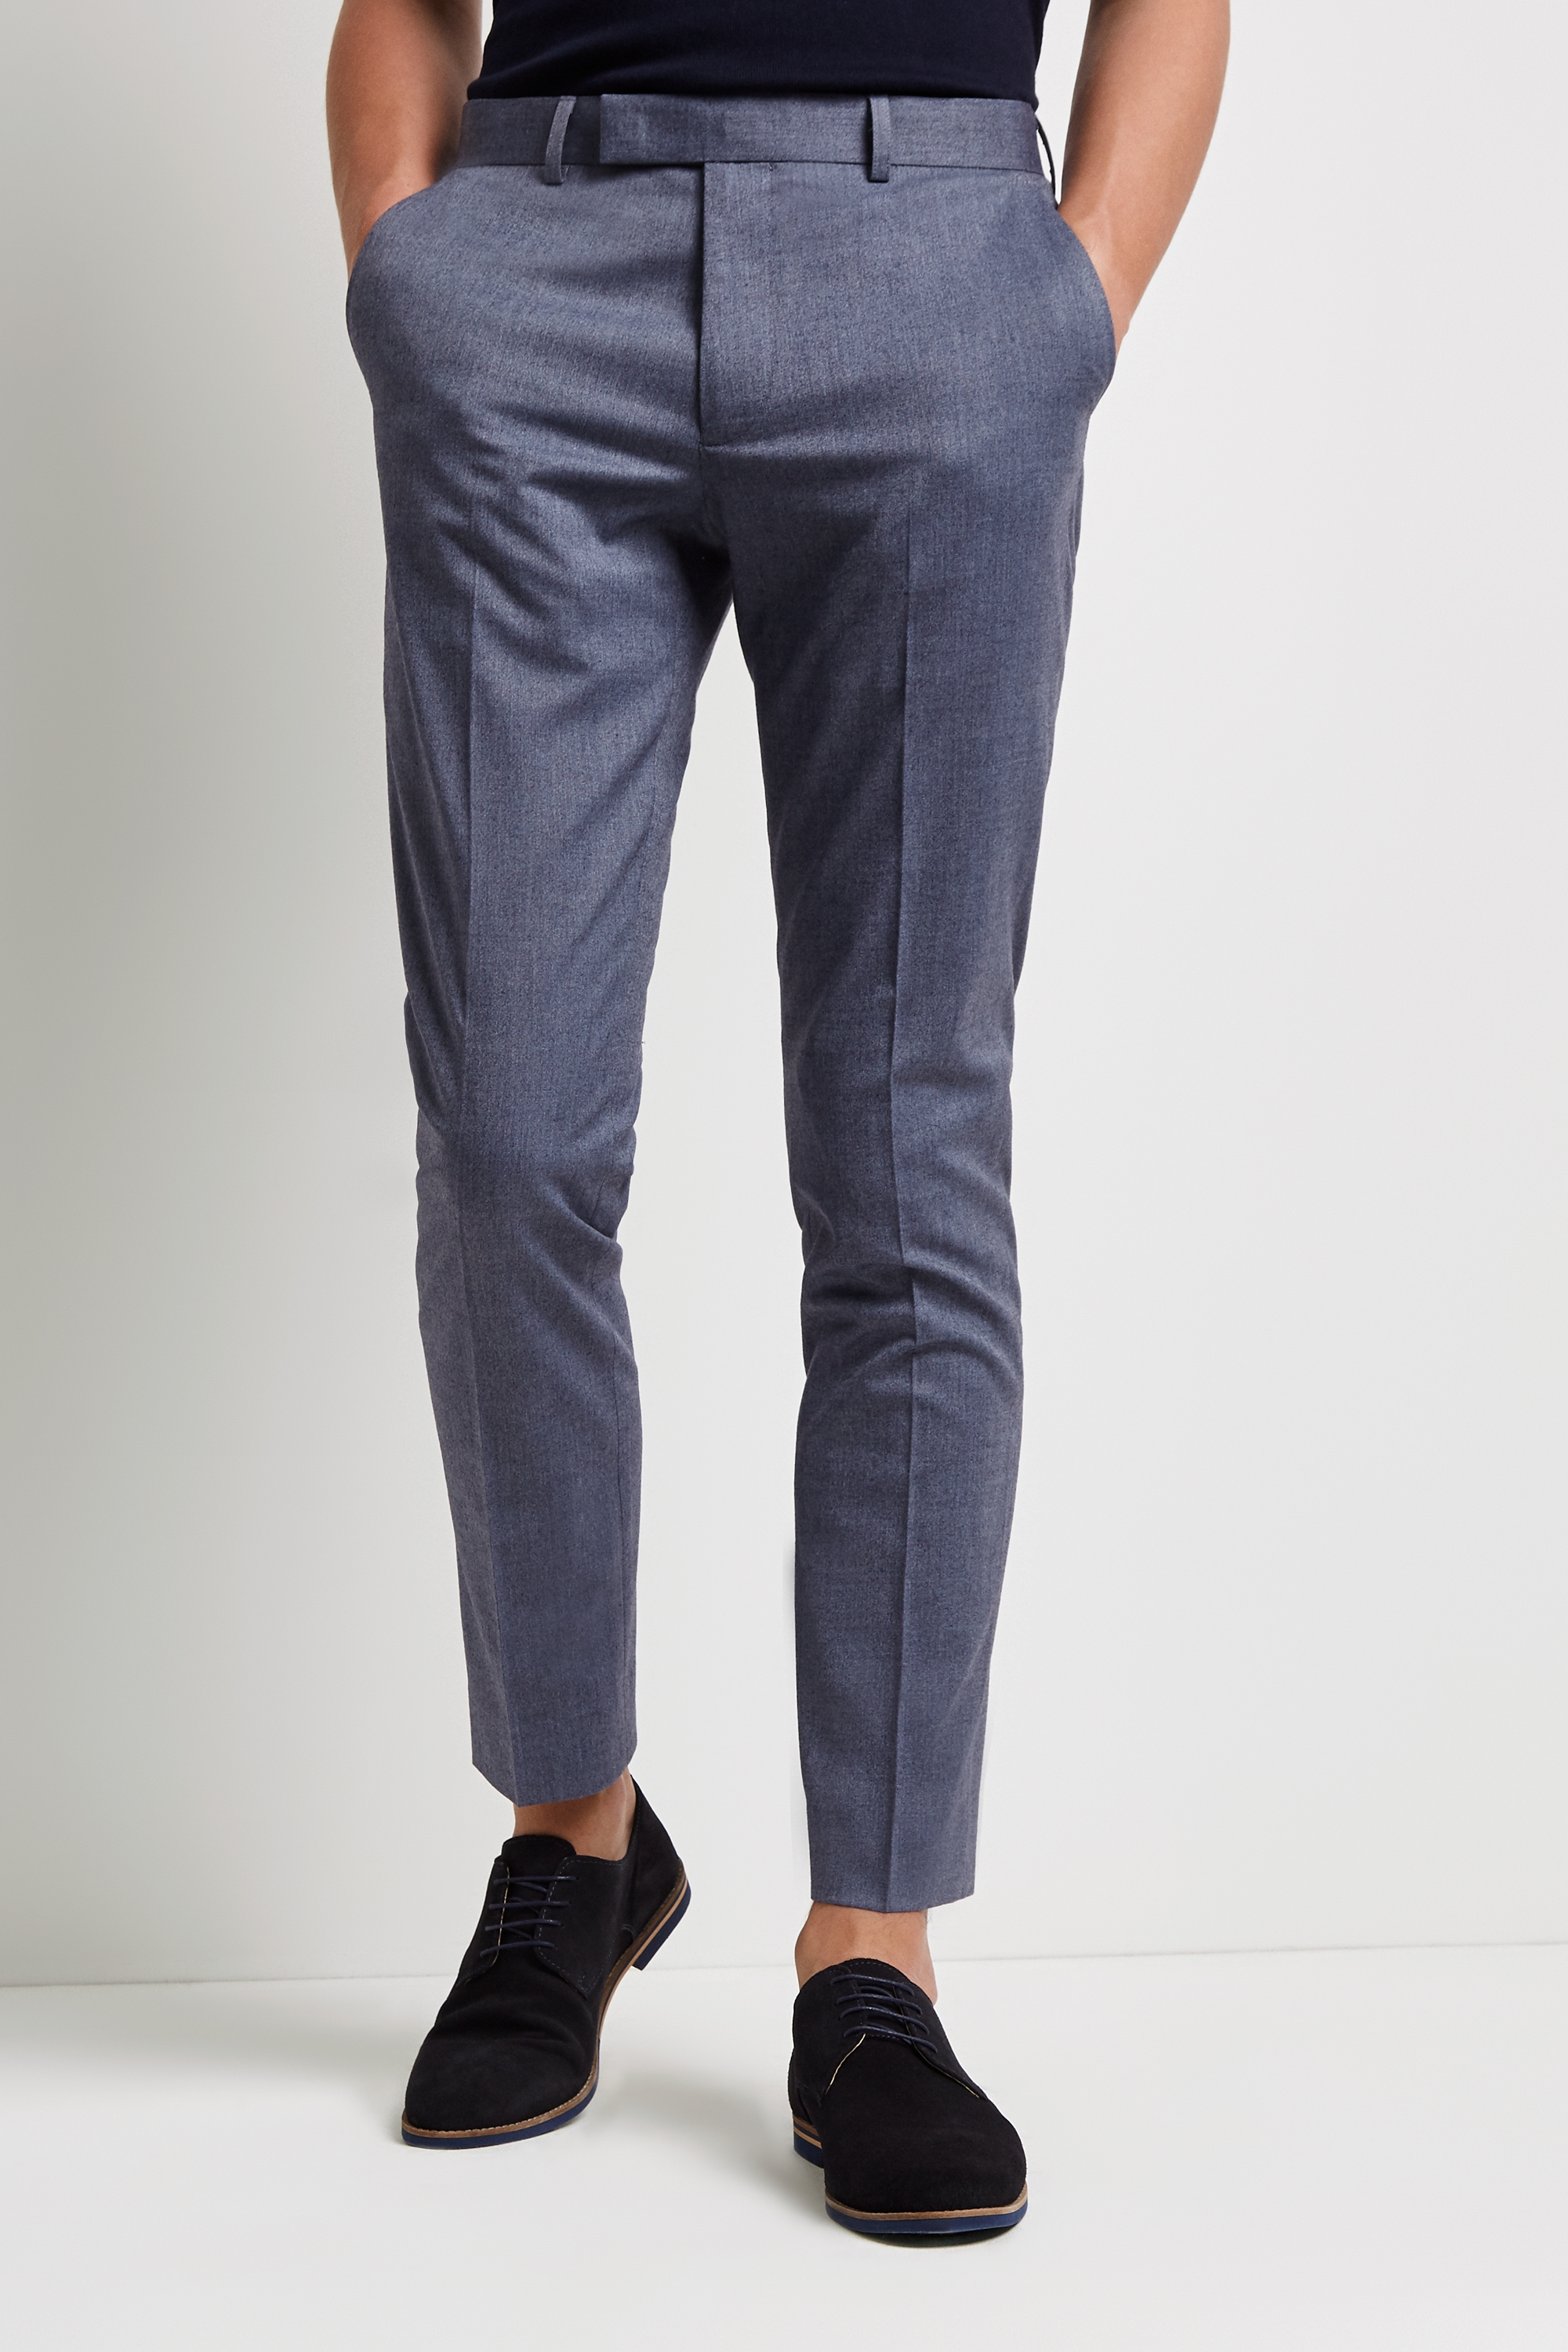 Moss Bros Moss London Skinny Fit Unstructured Graphite Trousers